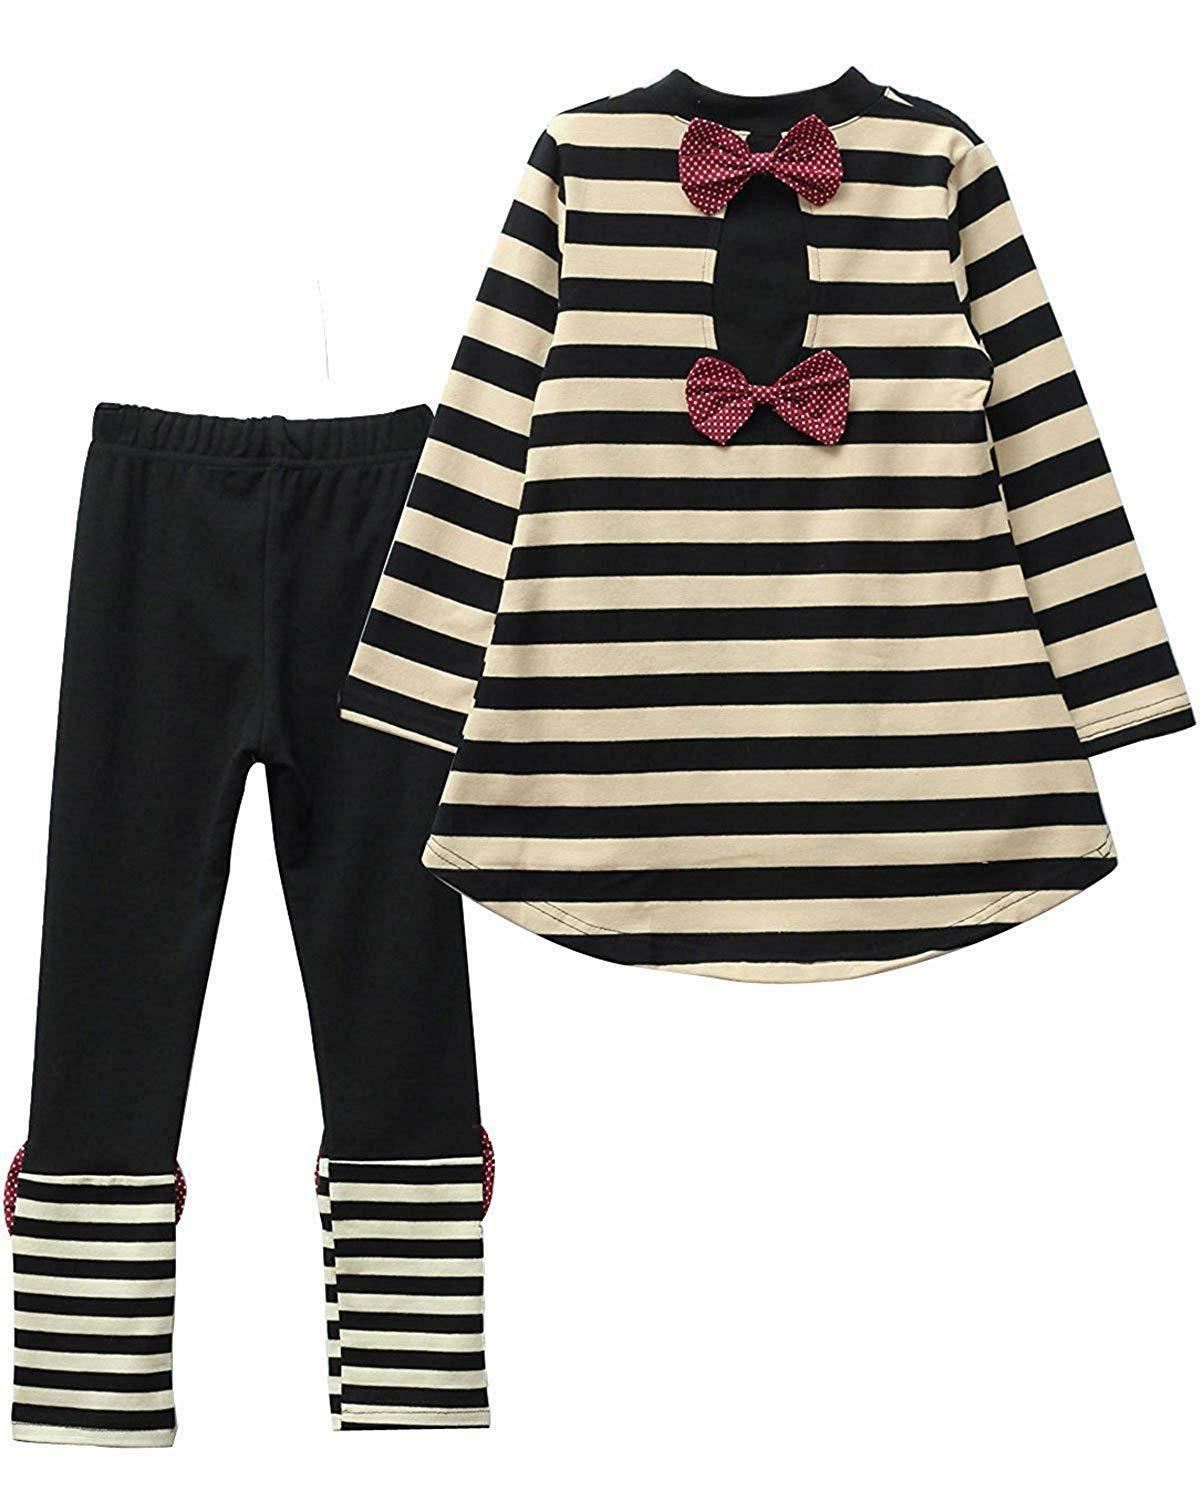 M RACLE Cute Little Girls' 2 Long Sleeve Top Pants Clothes Set